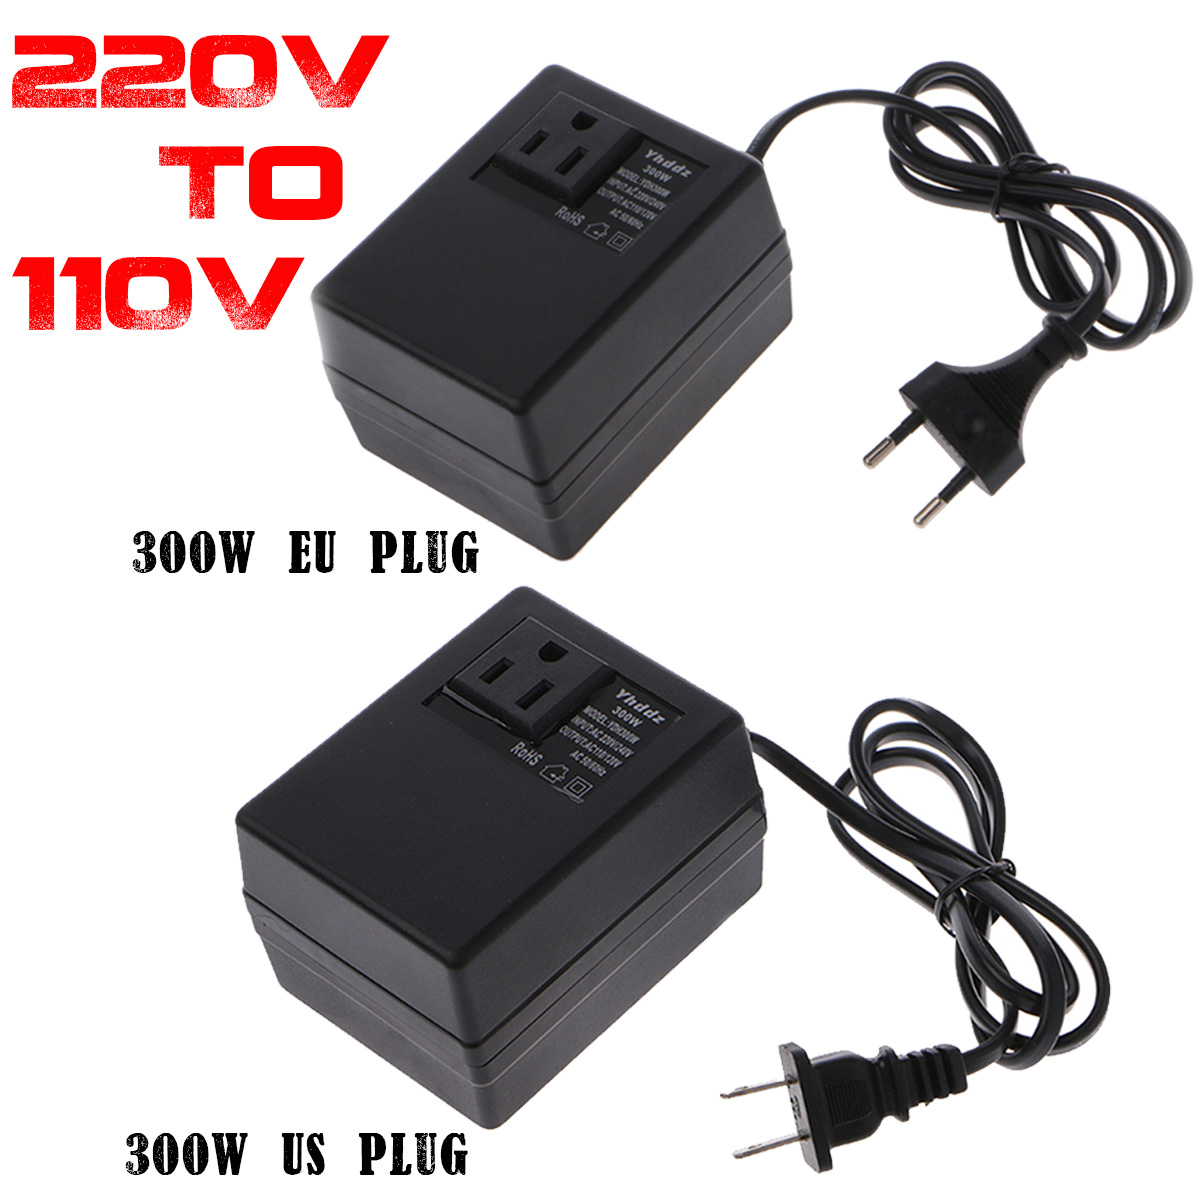 300W/<font><b>200W</b></font> <font><b>220V</b></font> <font><b>To</b></font> <font><b>110V</b></font> AC Step Down Travel Voltage Transformer Converter EU Plug Adapter image